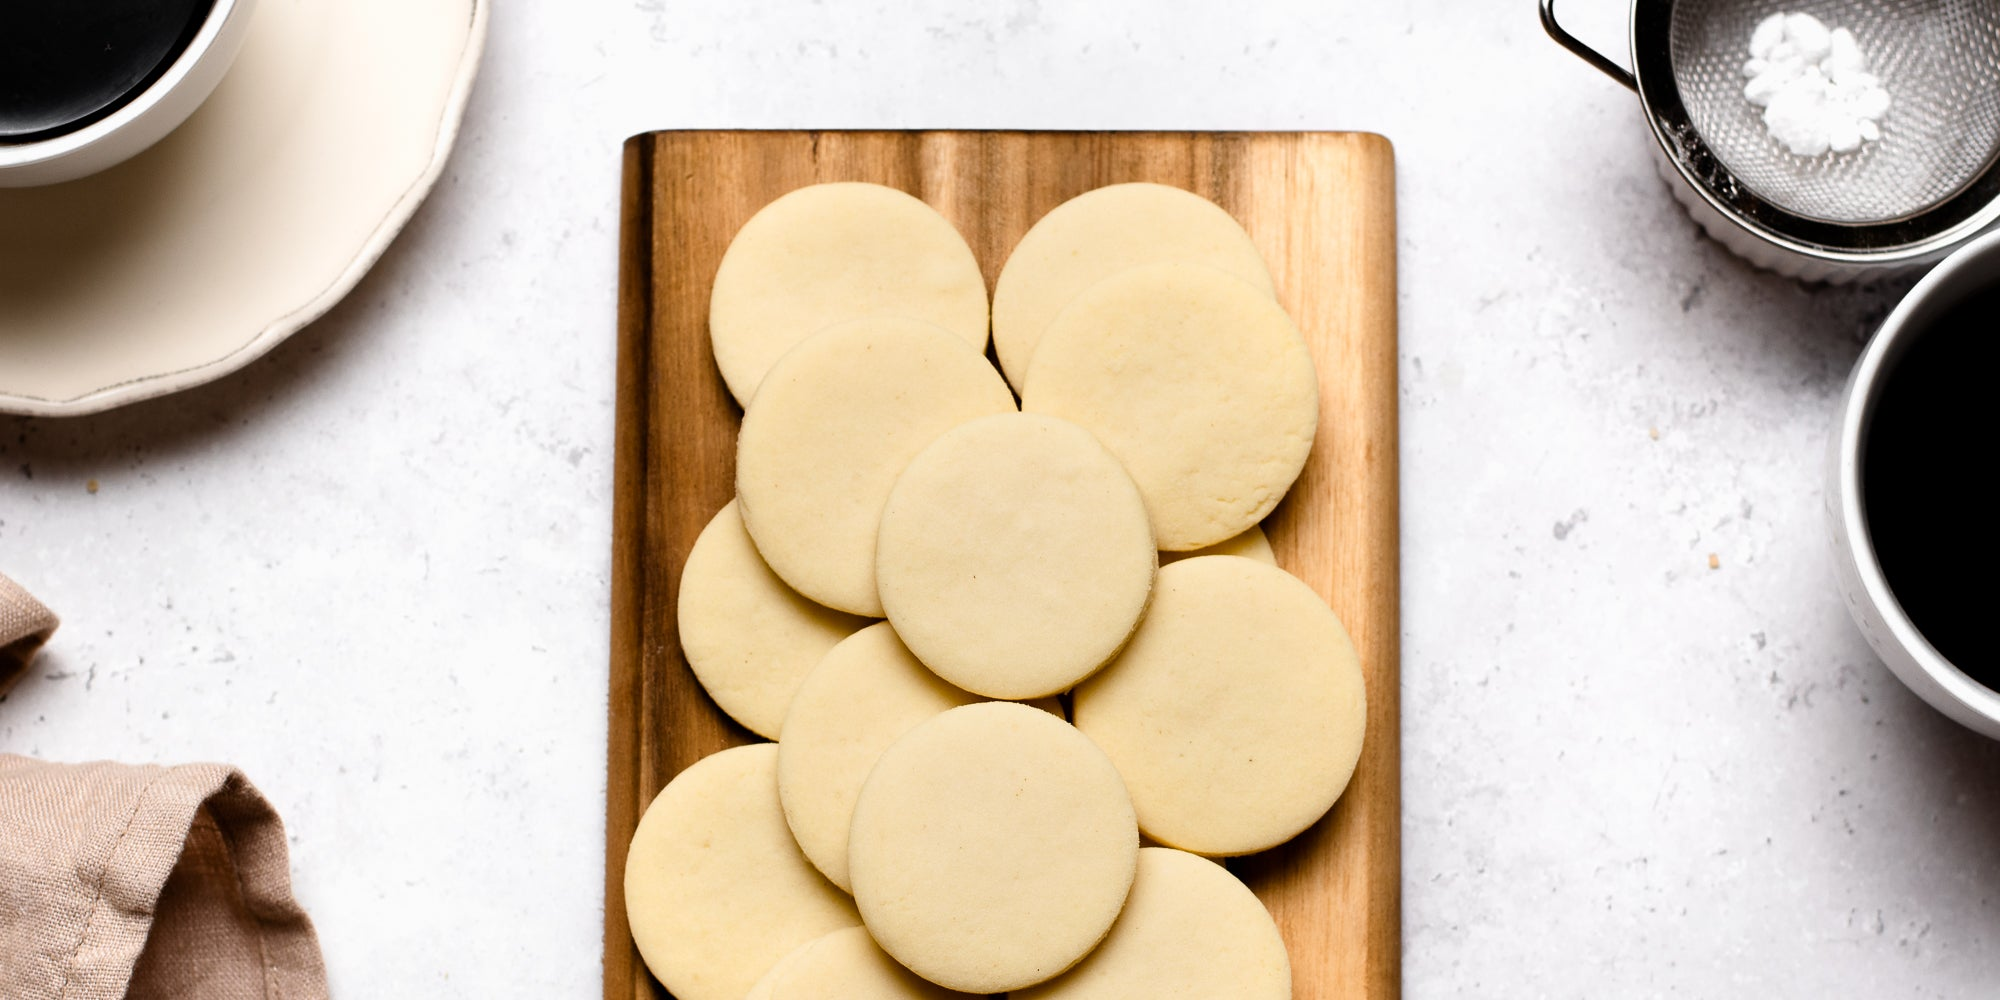 Top down view of vegan shortbread on a chopping board